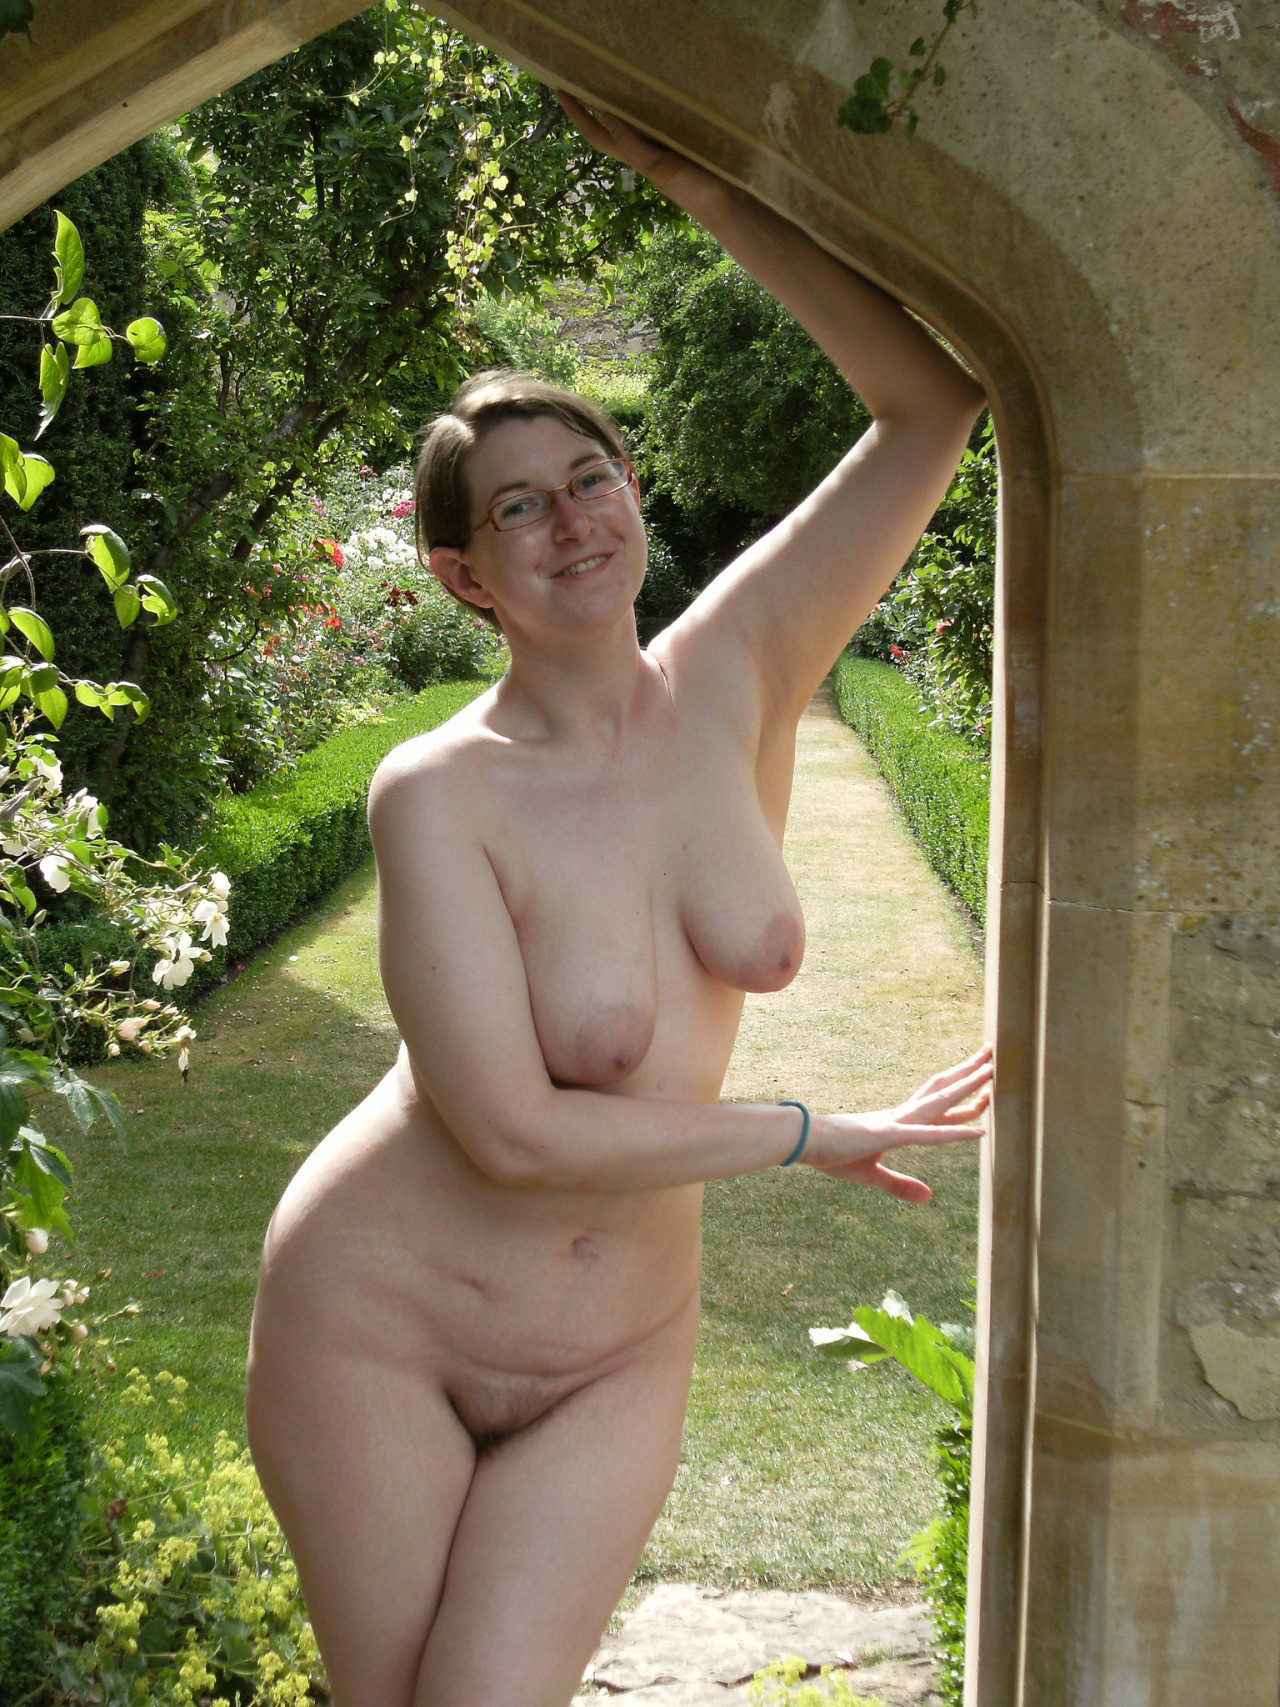 nudist-women-in-home-pictures-of-peoples-facial-expressions